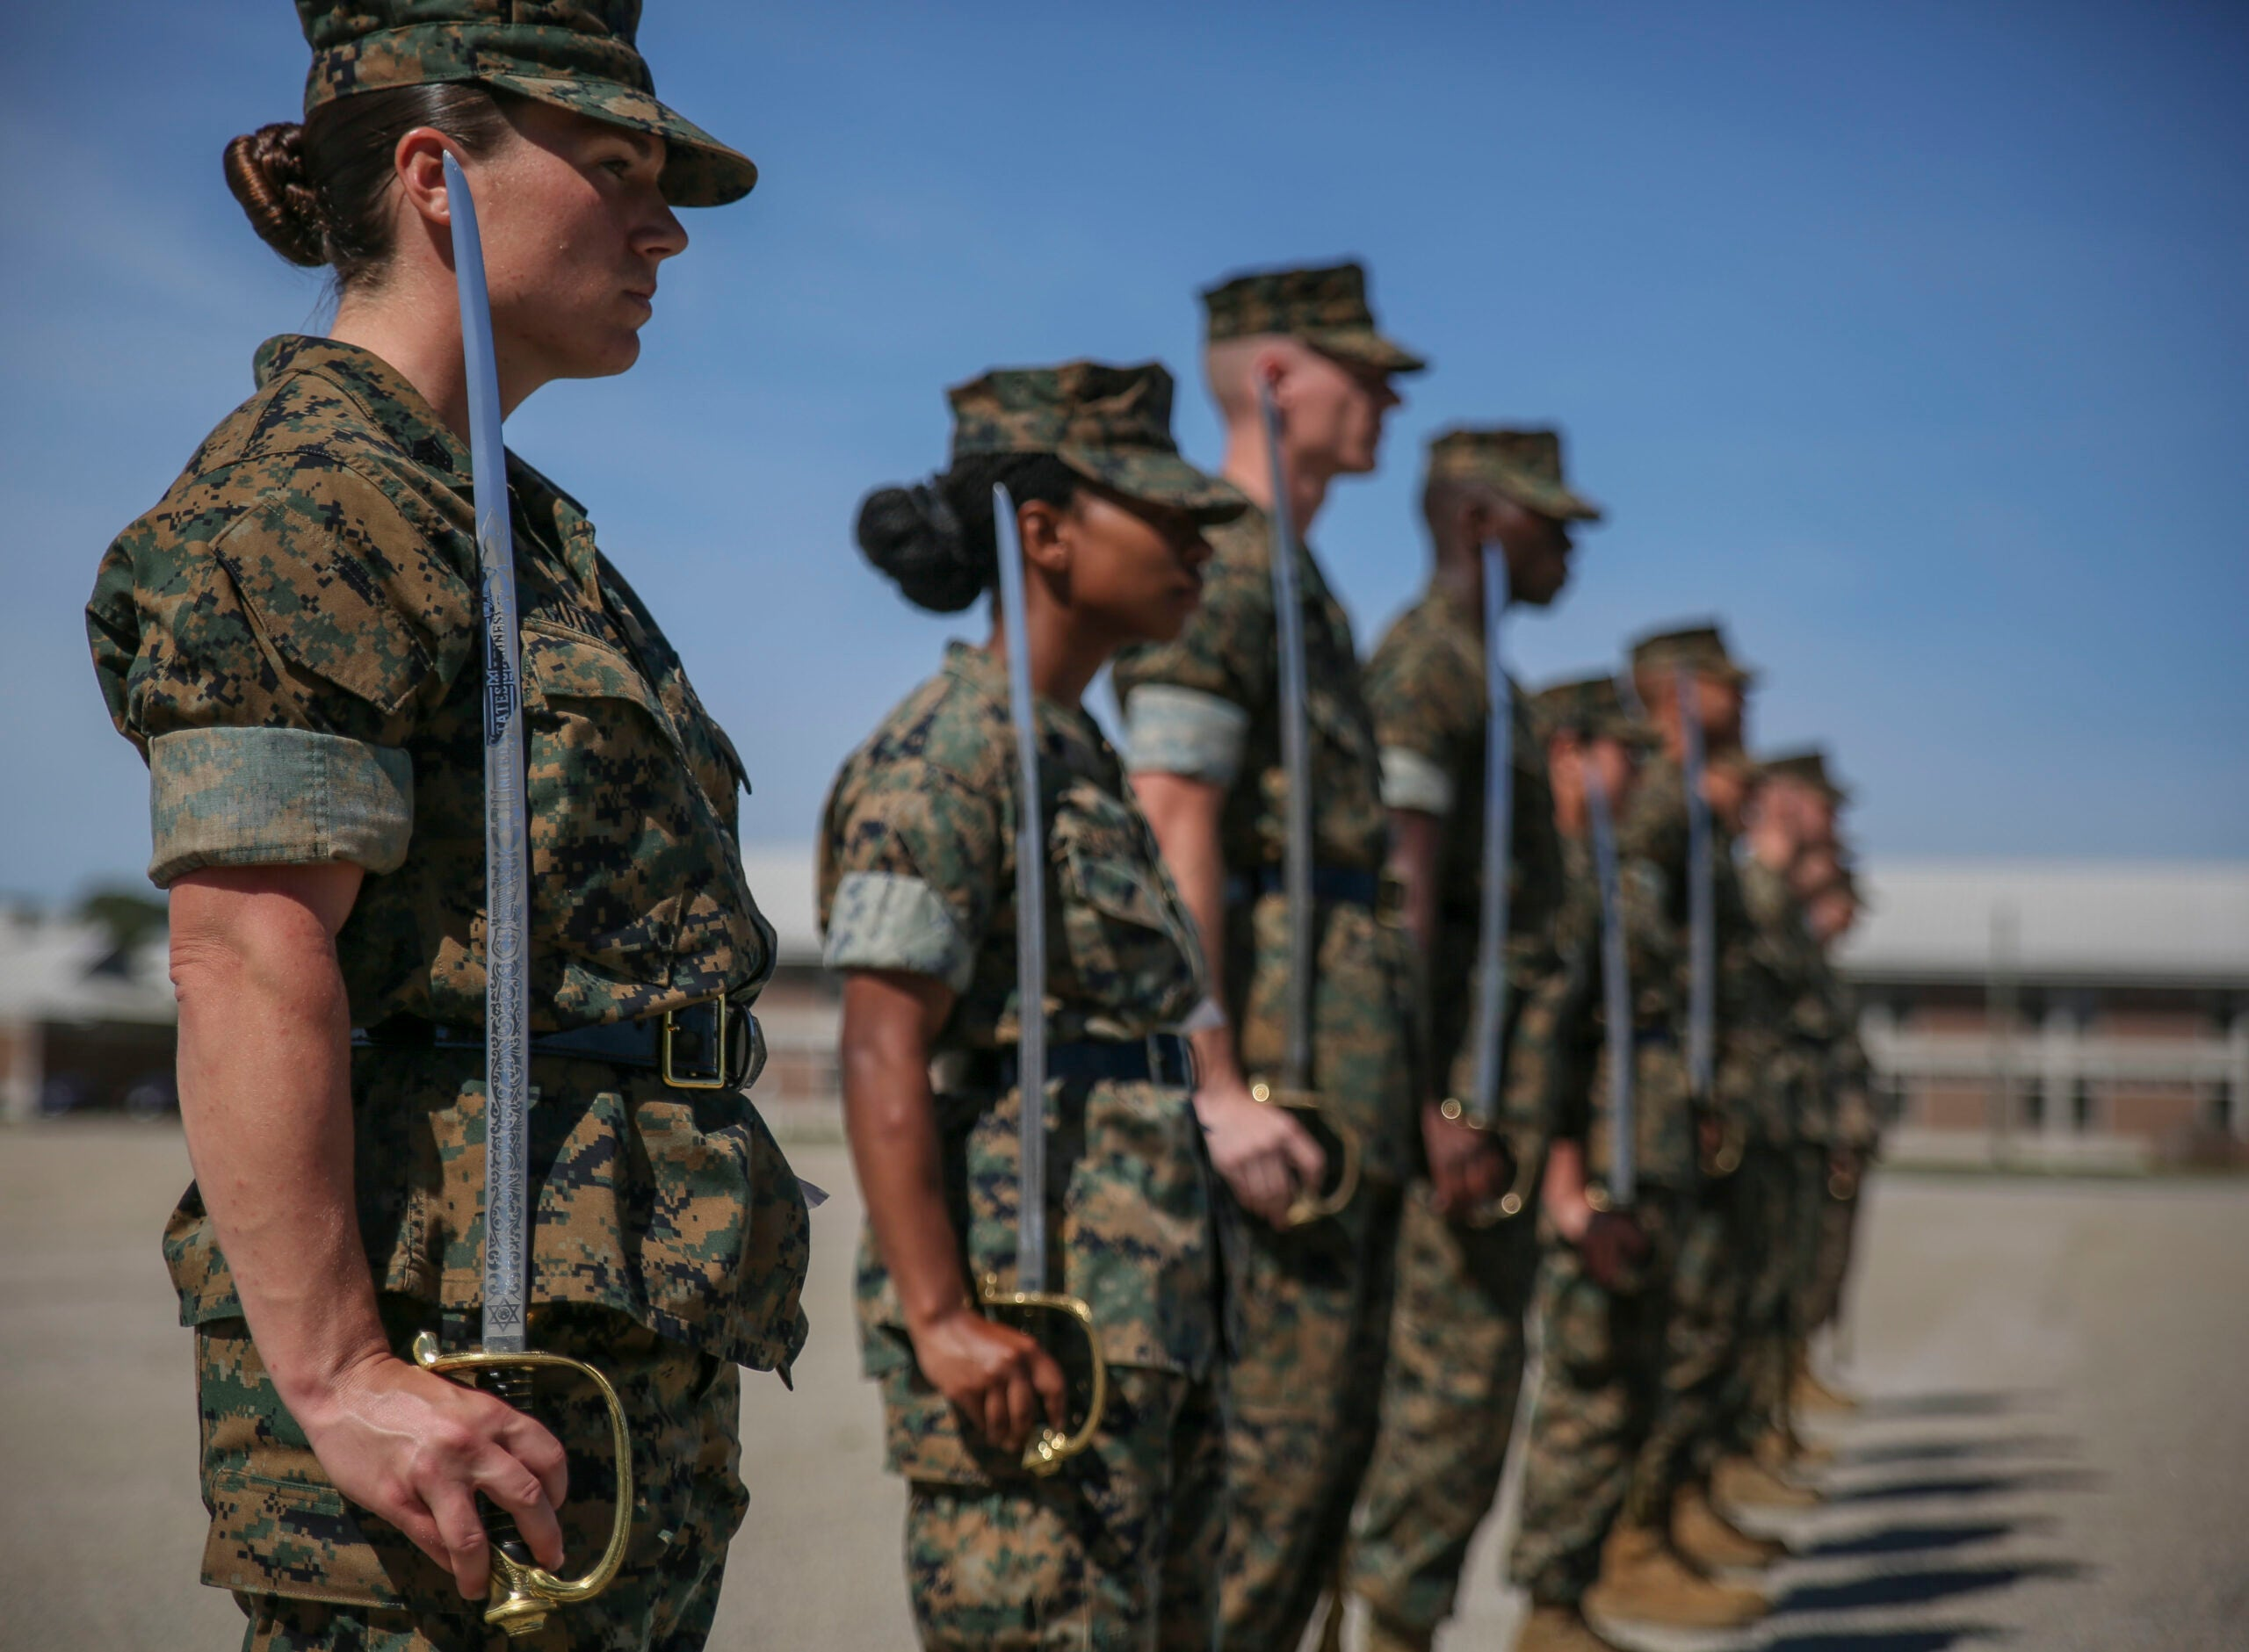 Marines can now earn up to $10,000 to volunteer as drill instructors and recruiters